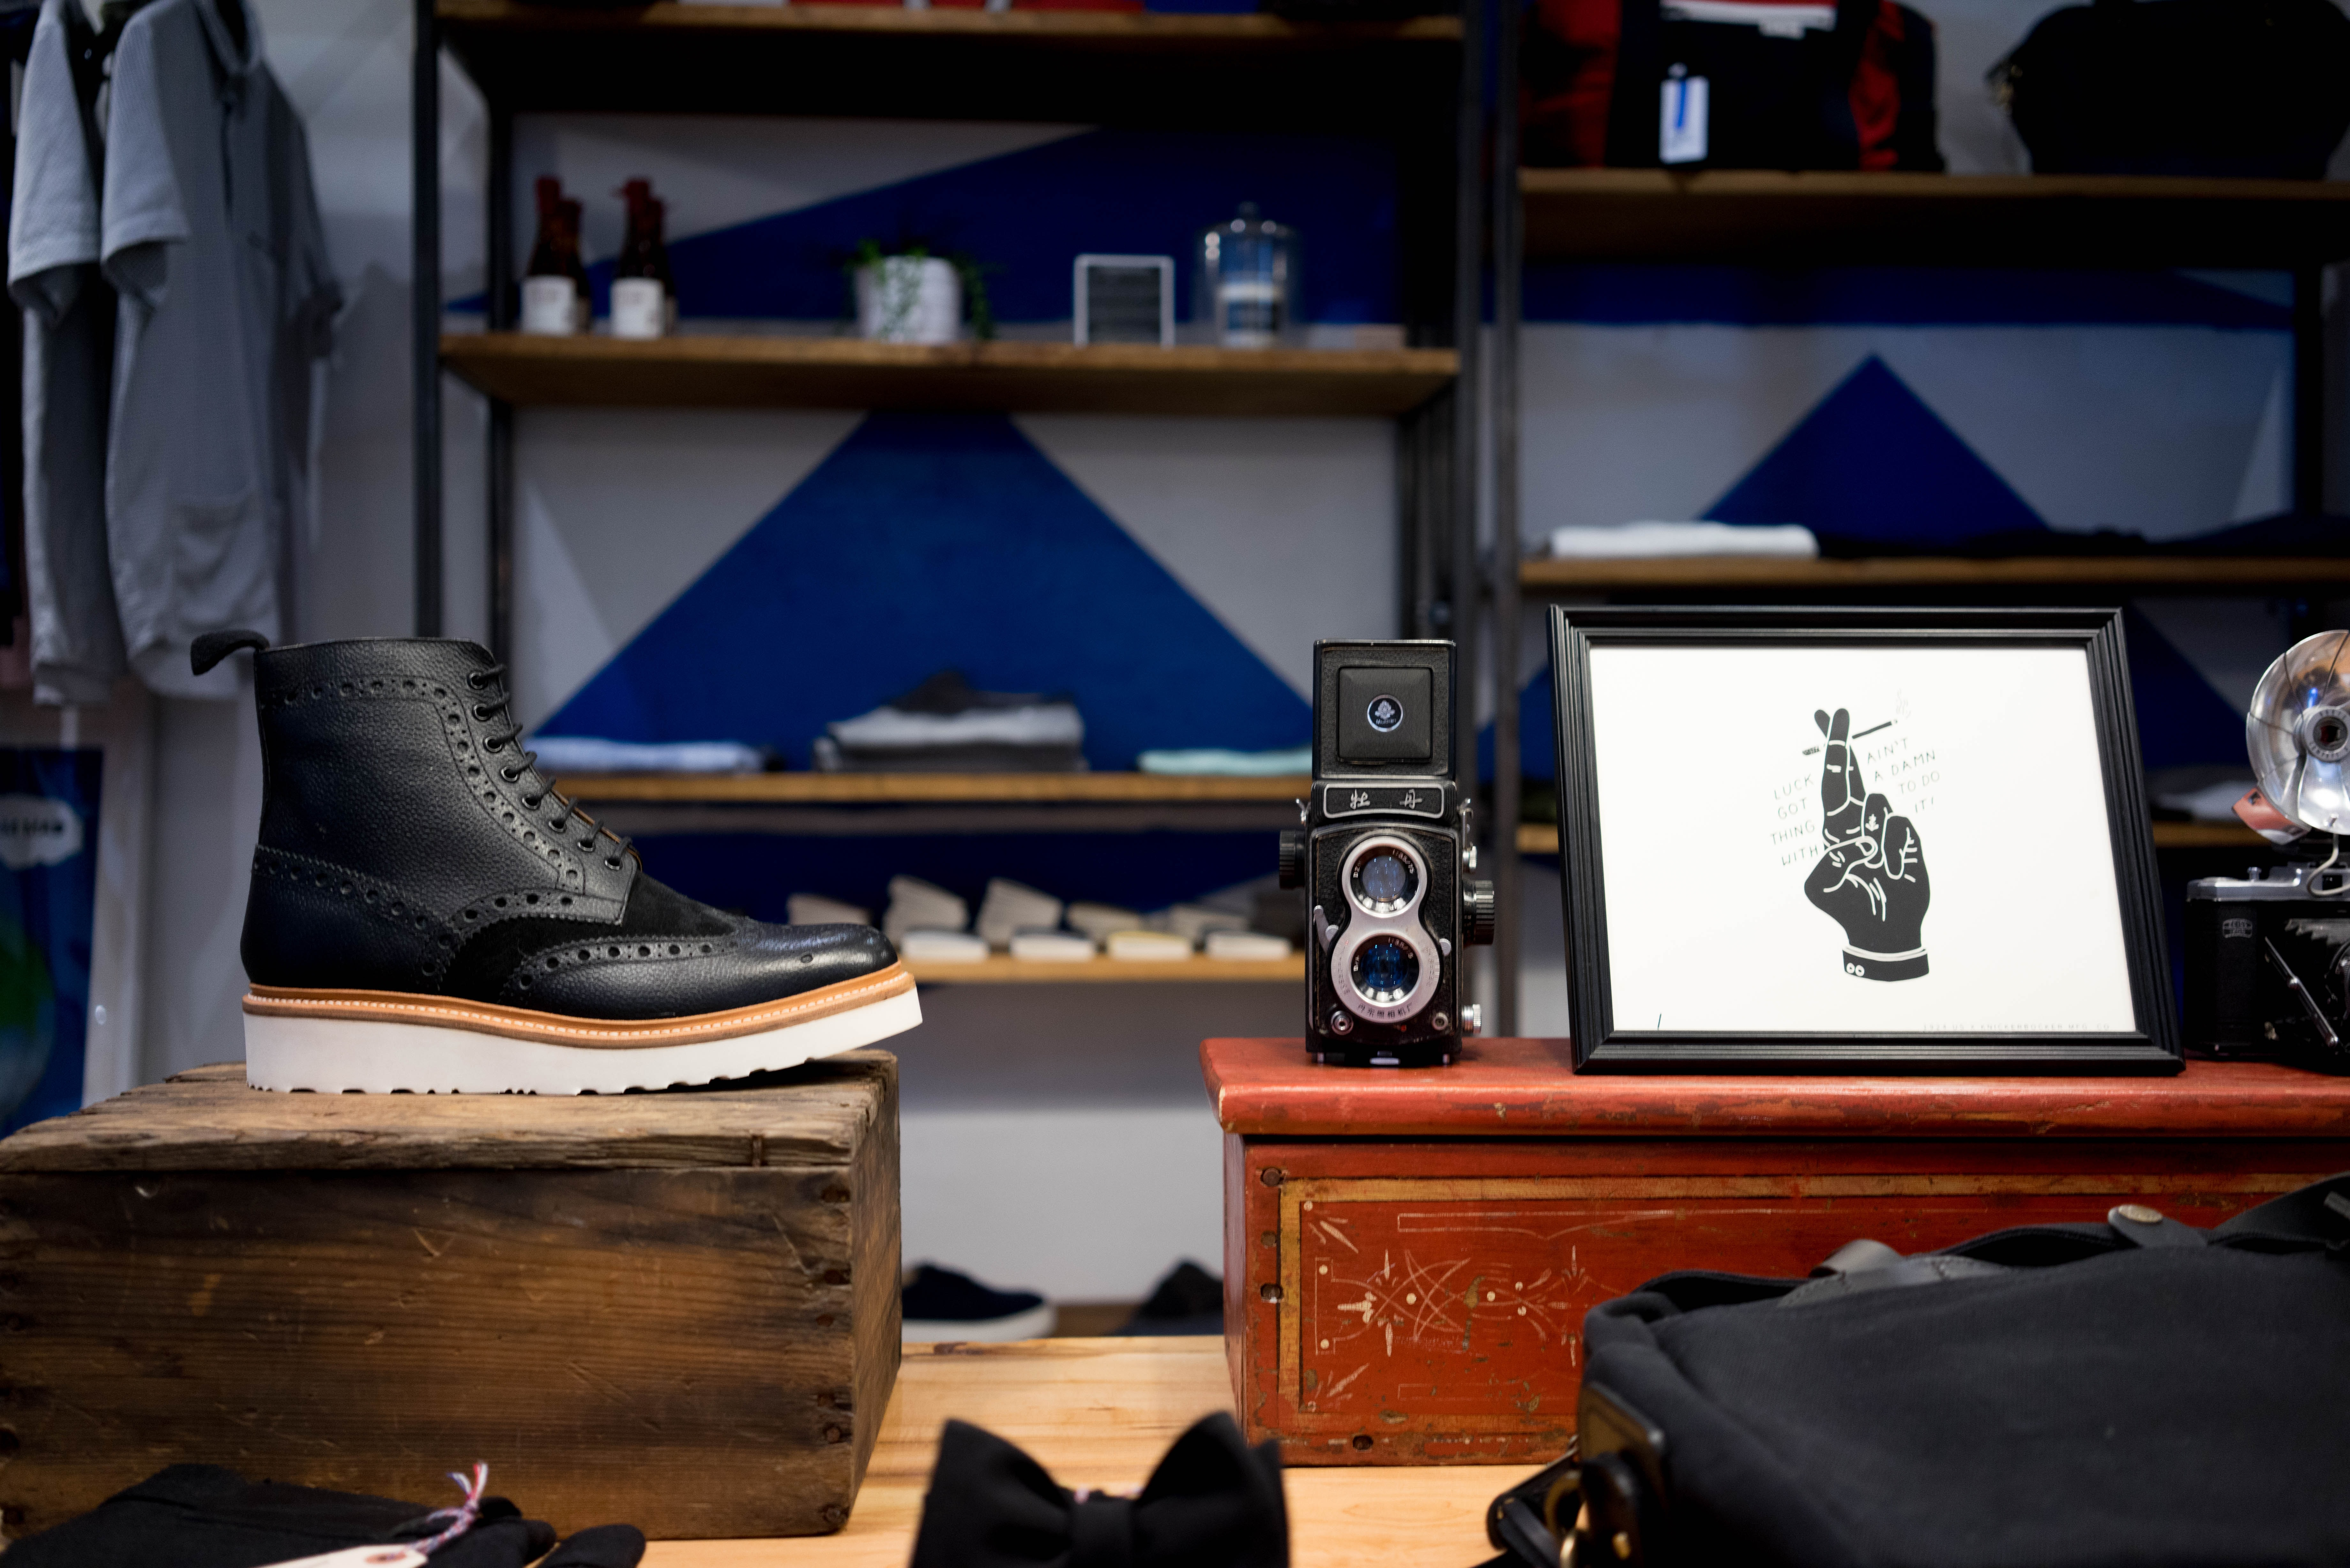 The vintage interior of an apparel store with a poster and a black leather shoe